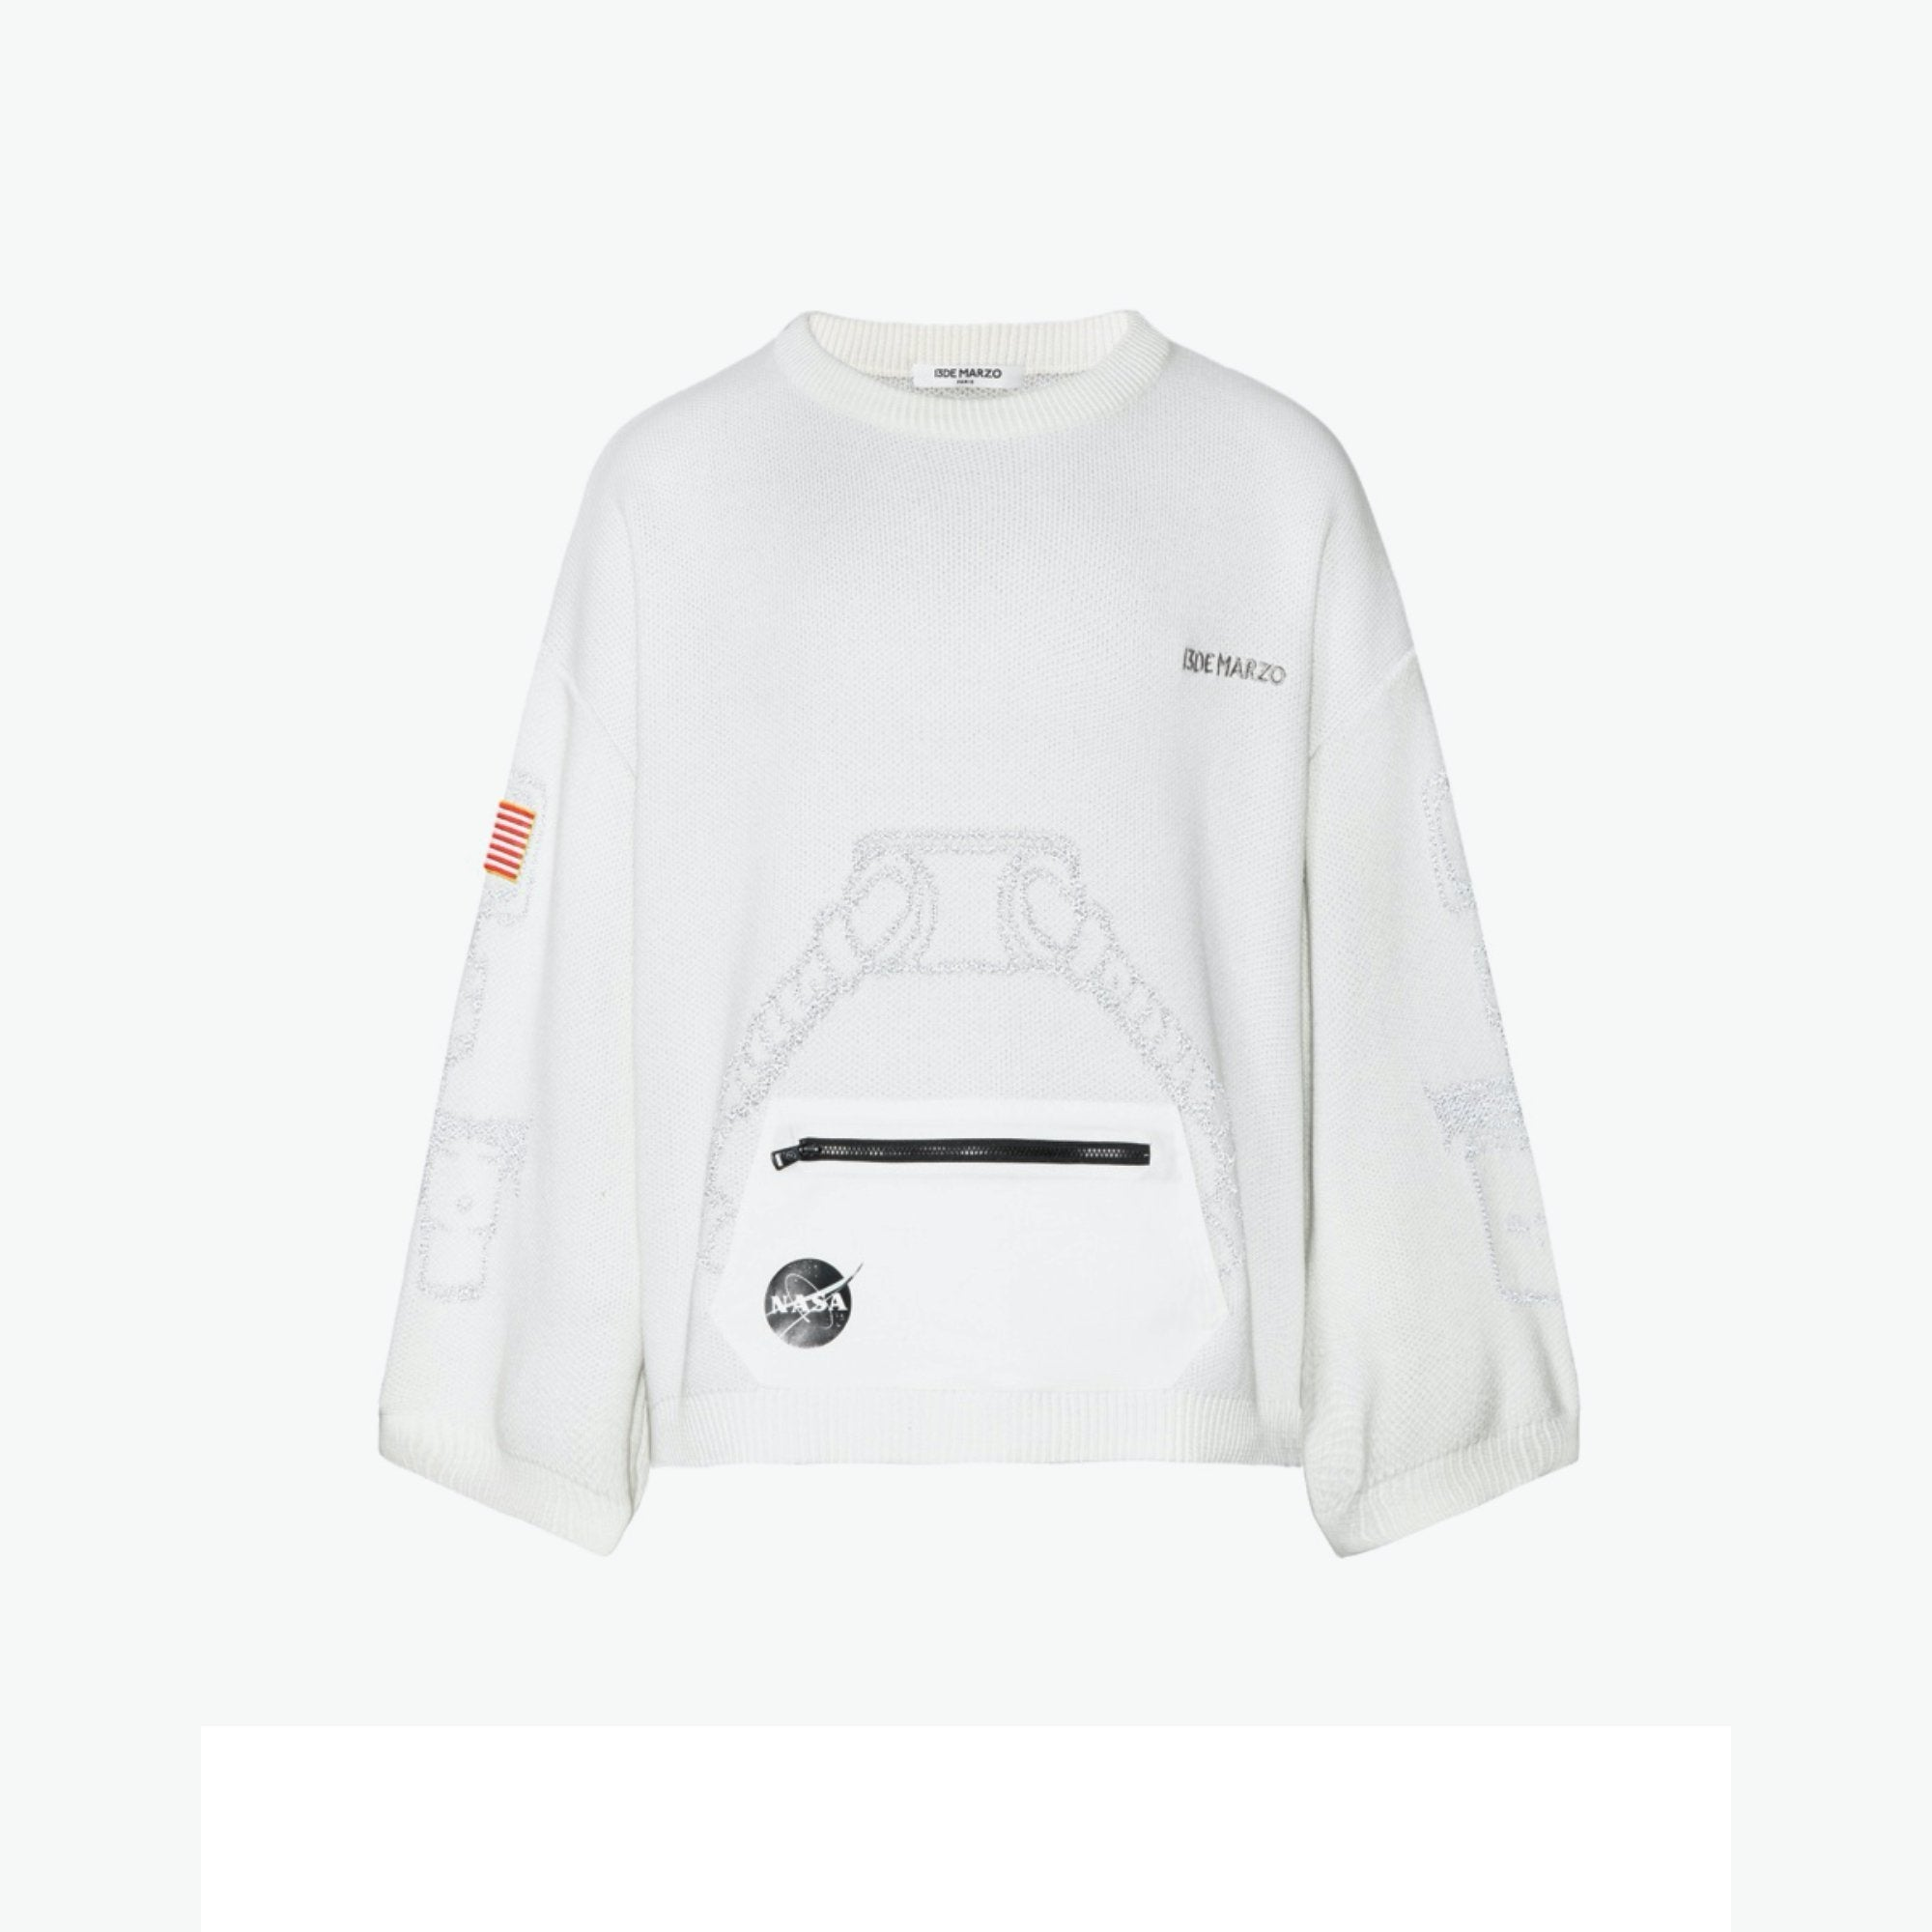 13 DE MARZO 3M Reflect Astronaut Teddy Bear Sweater White | MADA IN CHINA